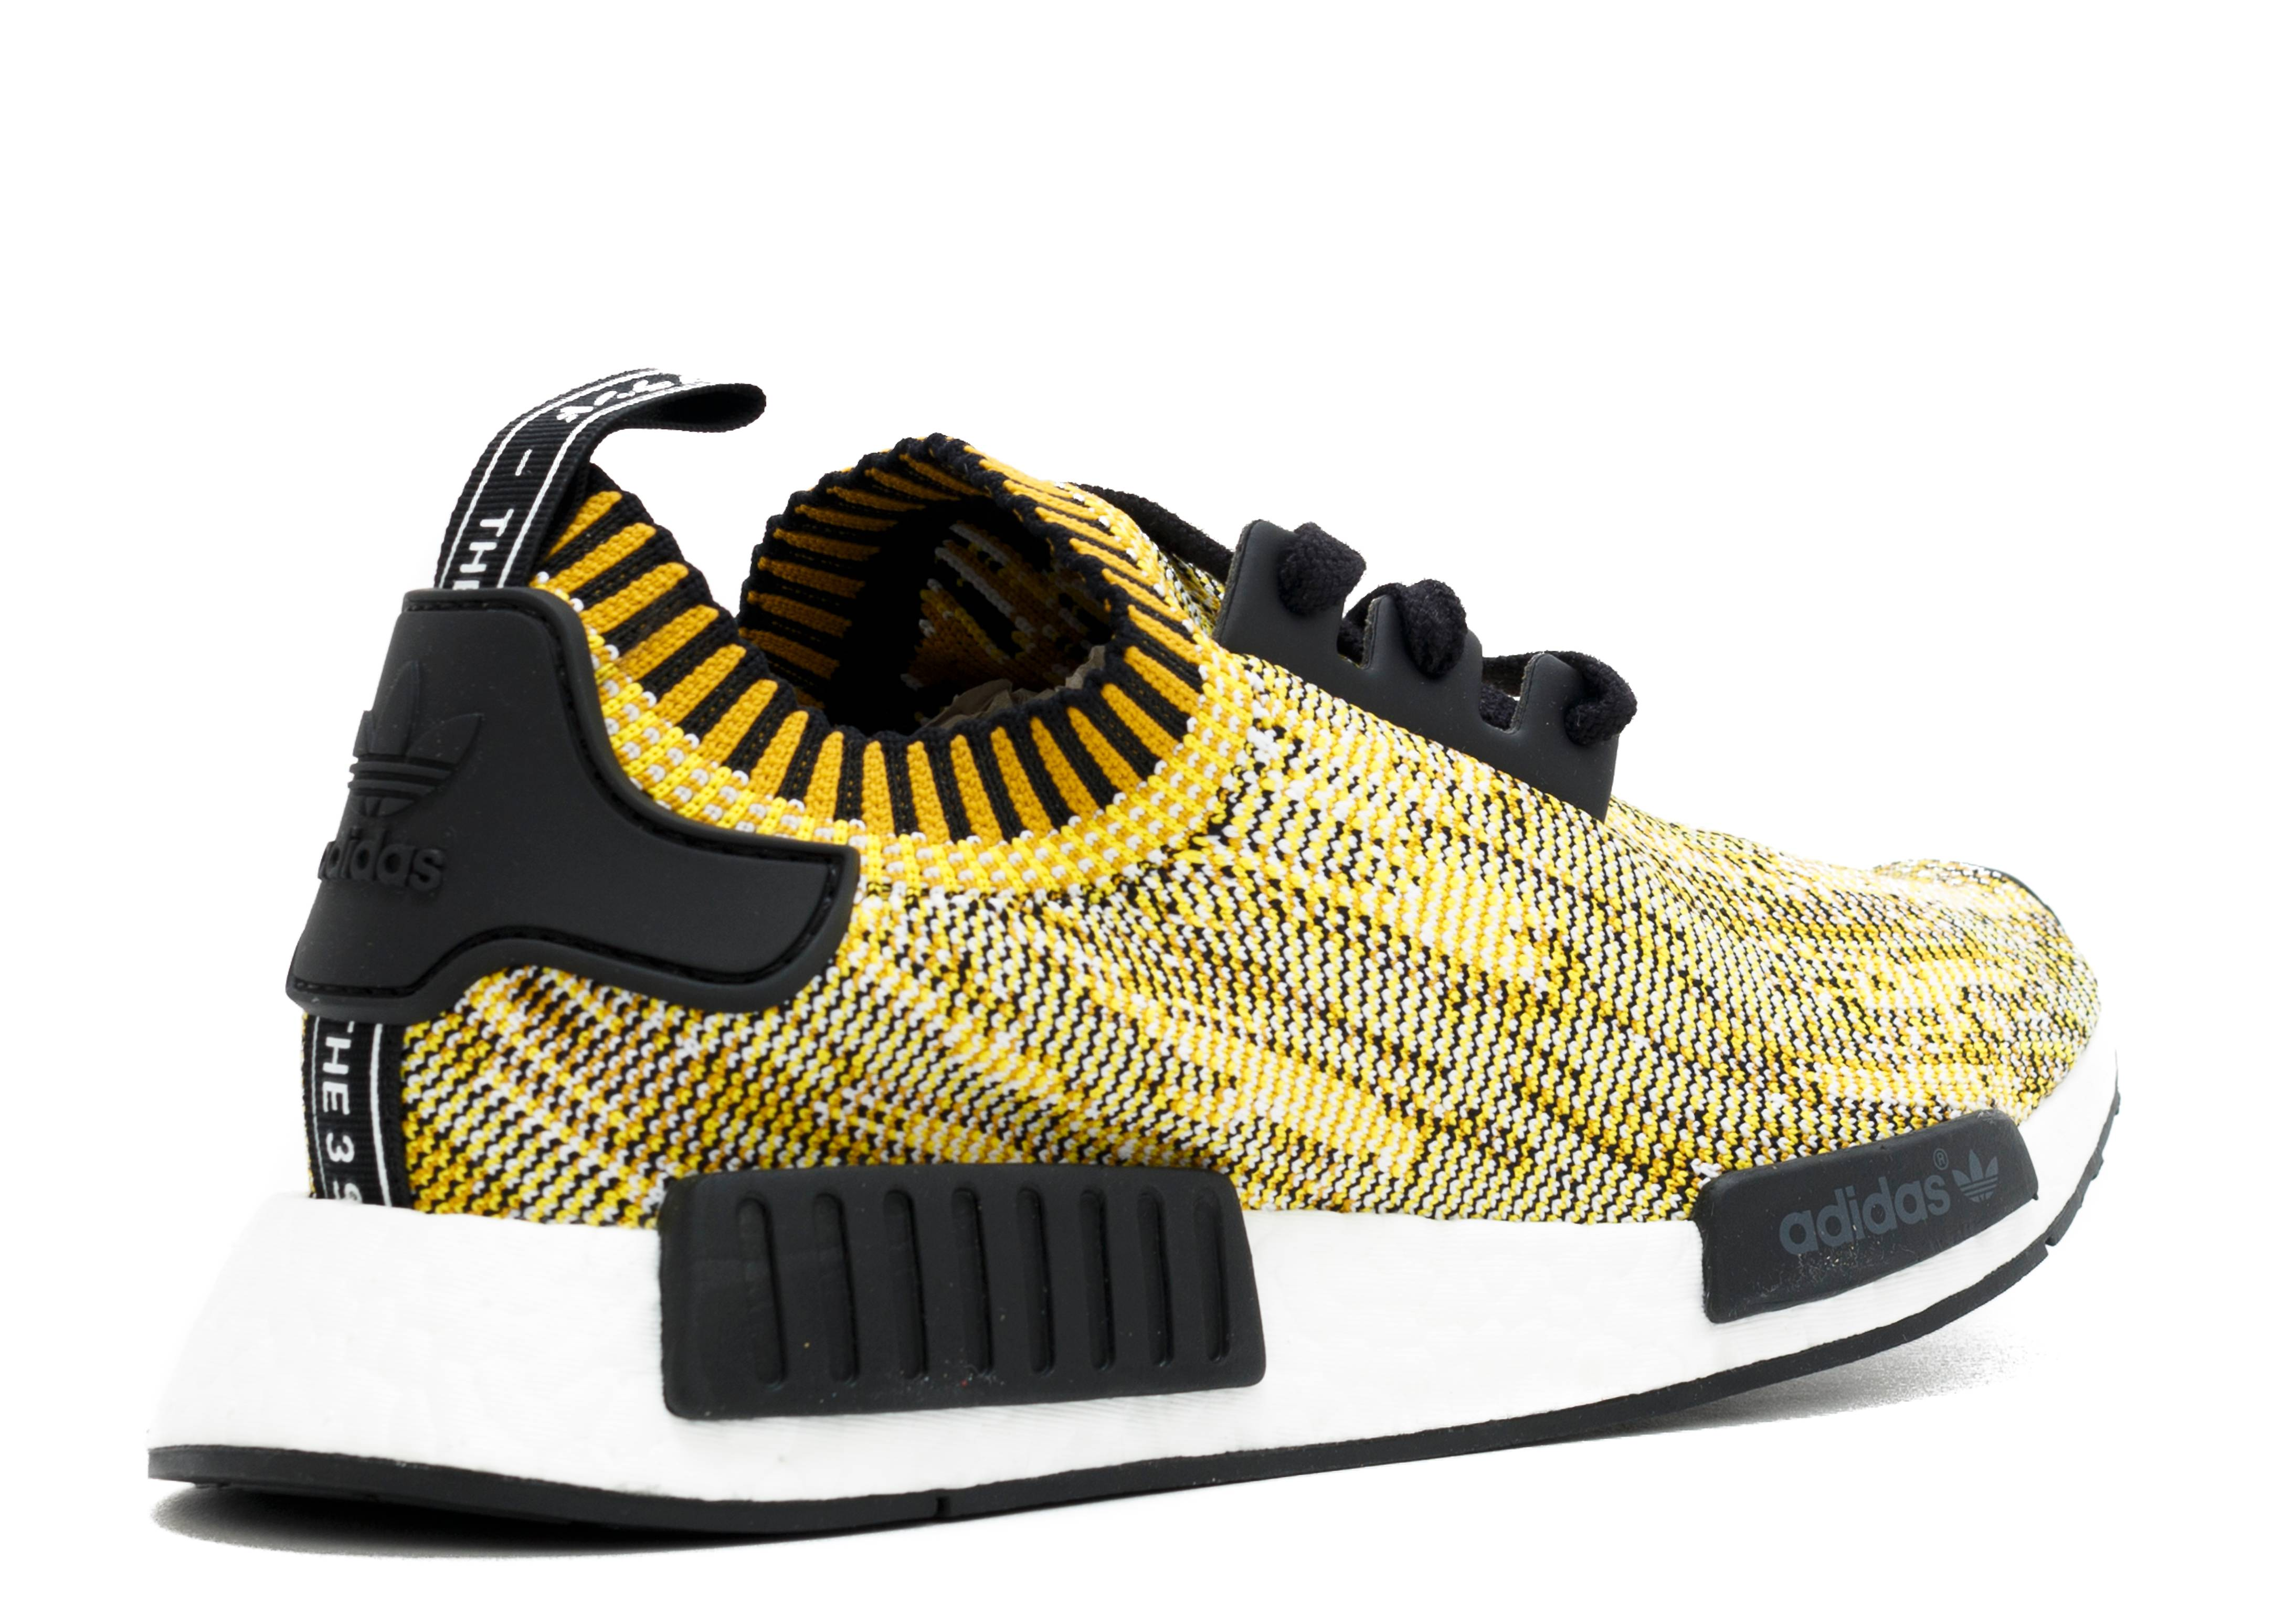 adidas nmd black and gold